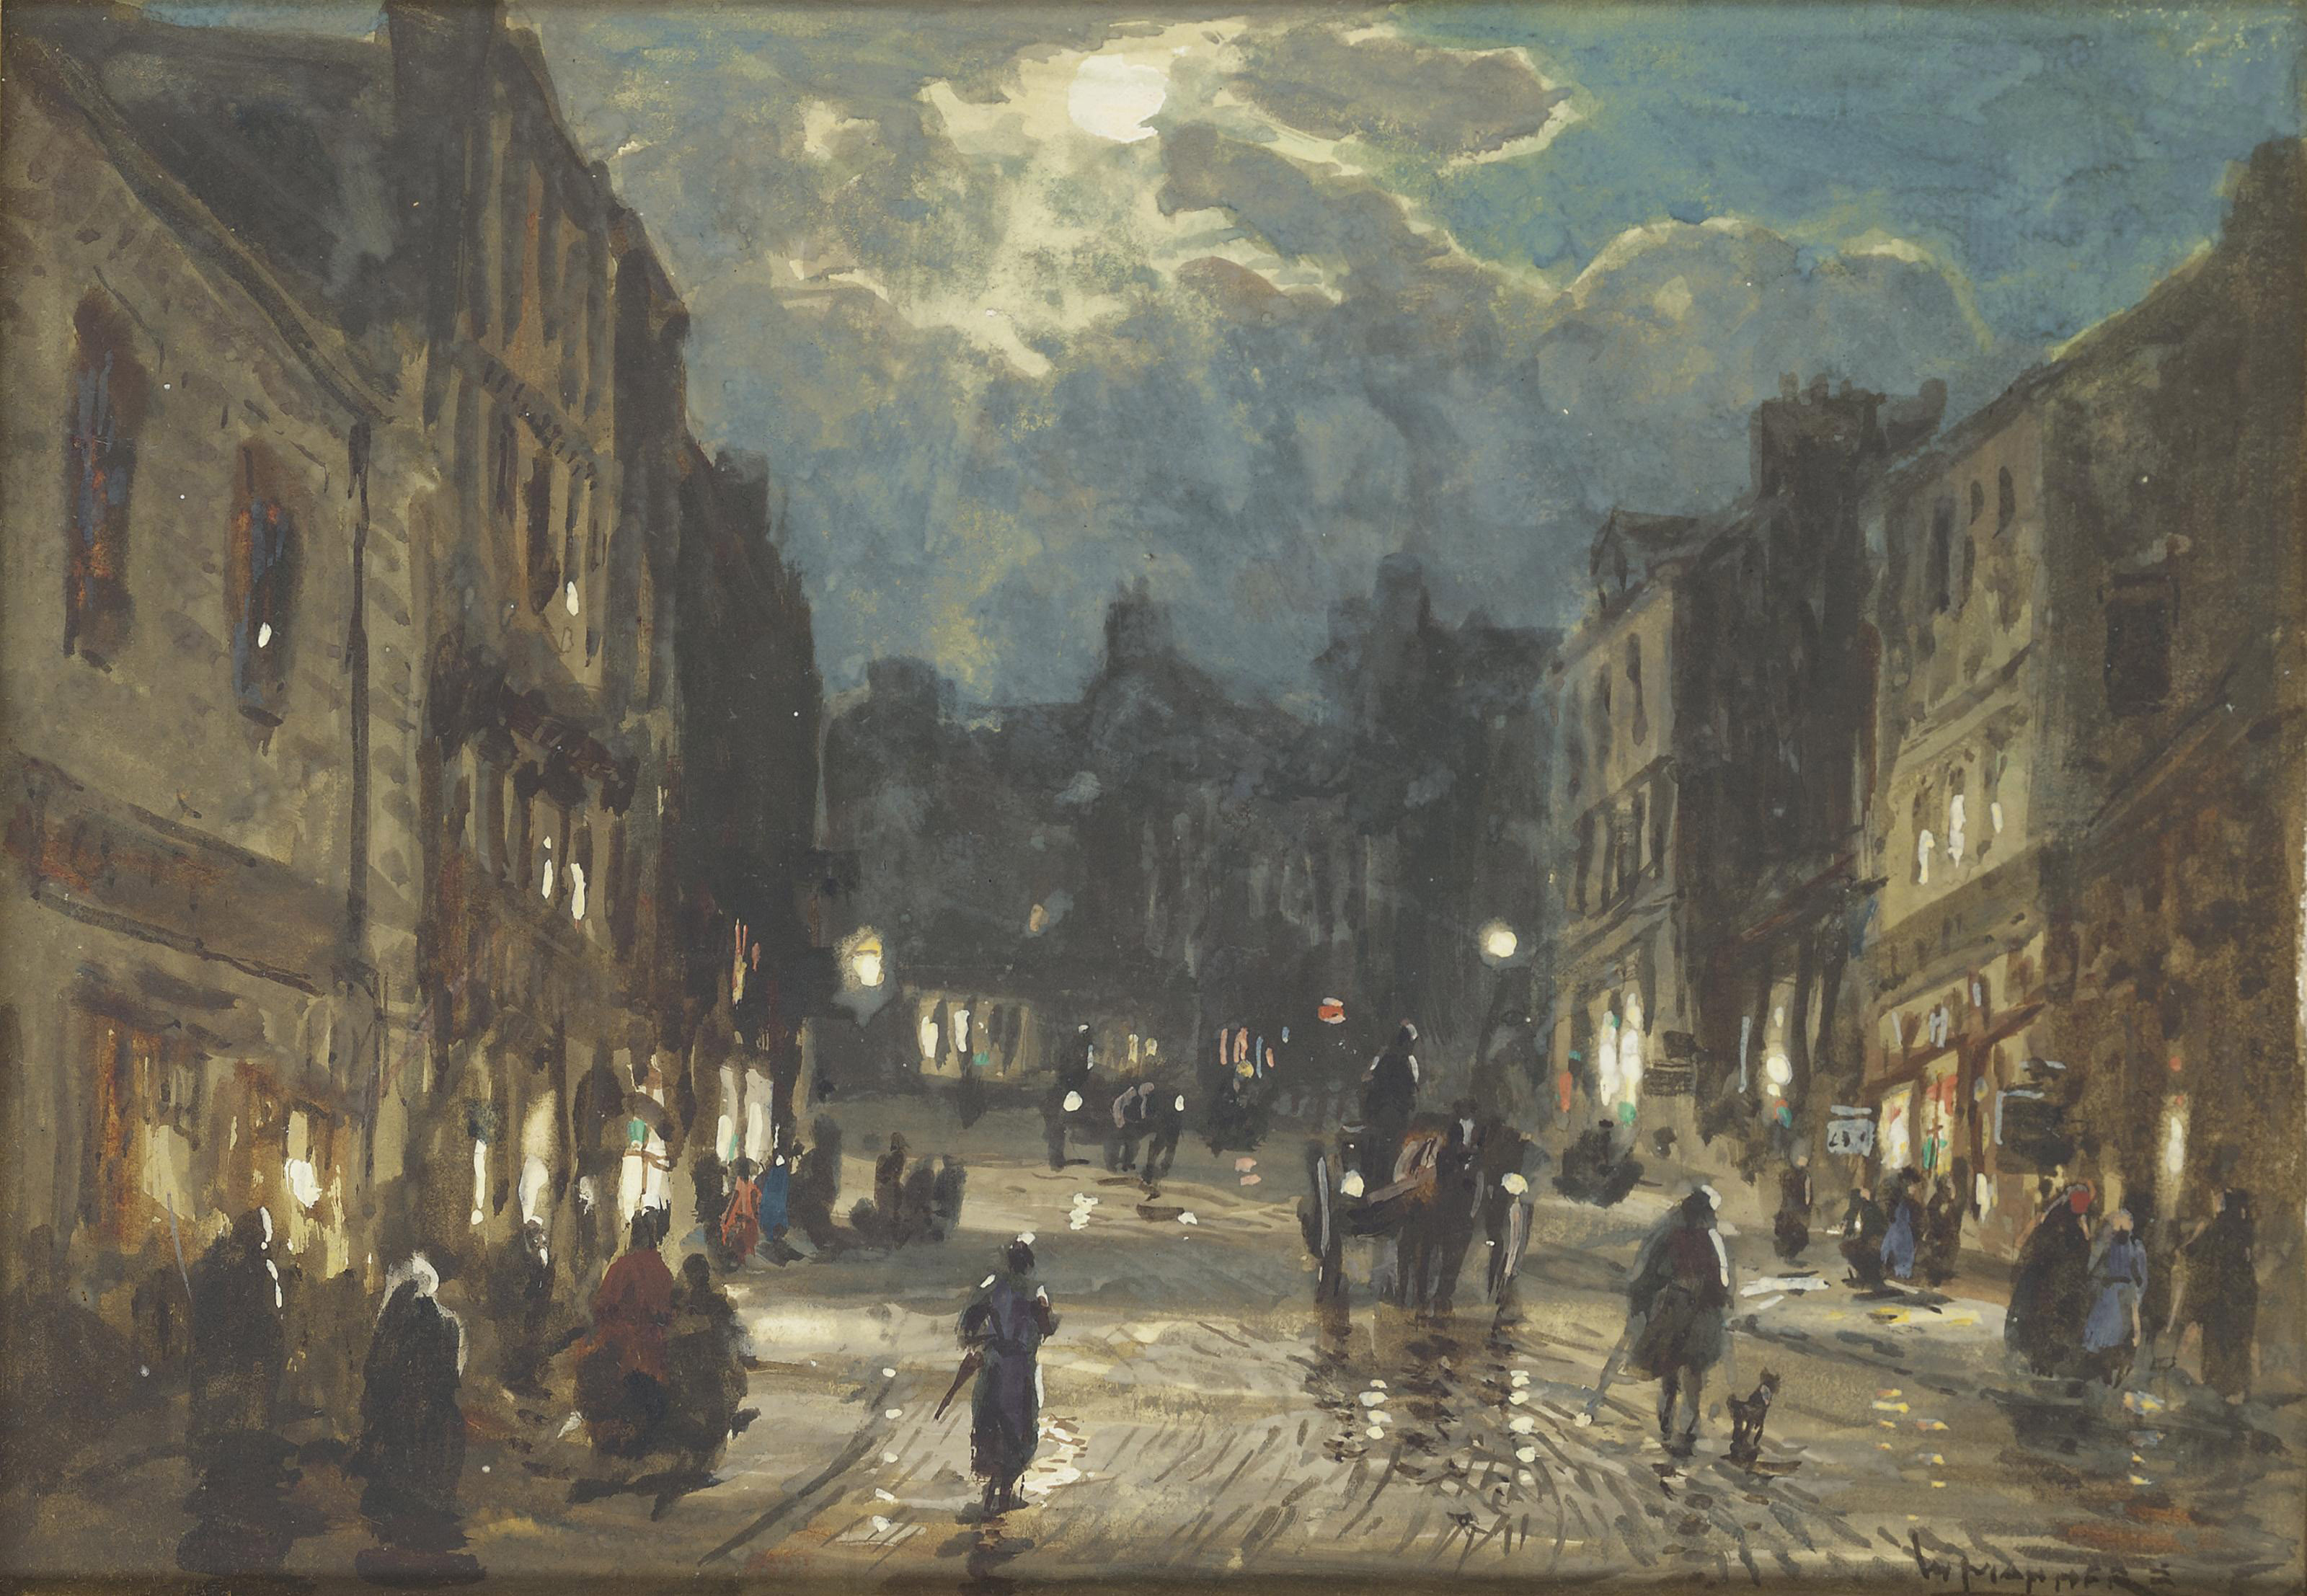 Figures and carriages on a street by moonlight (illustrated); and Figures and a horse-drawn cart on a street by moonlight